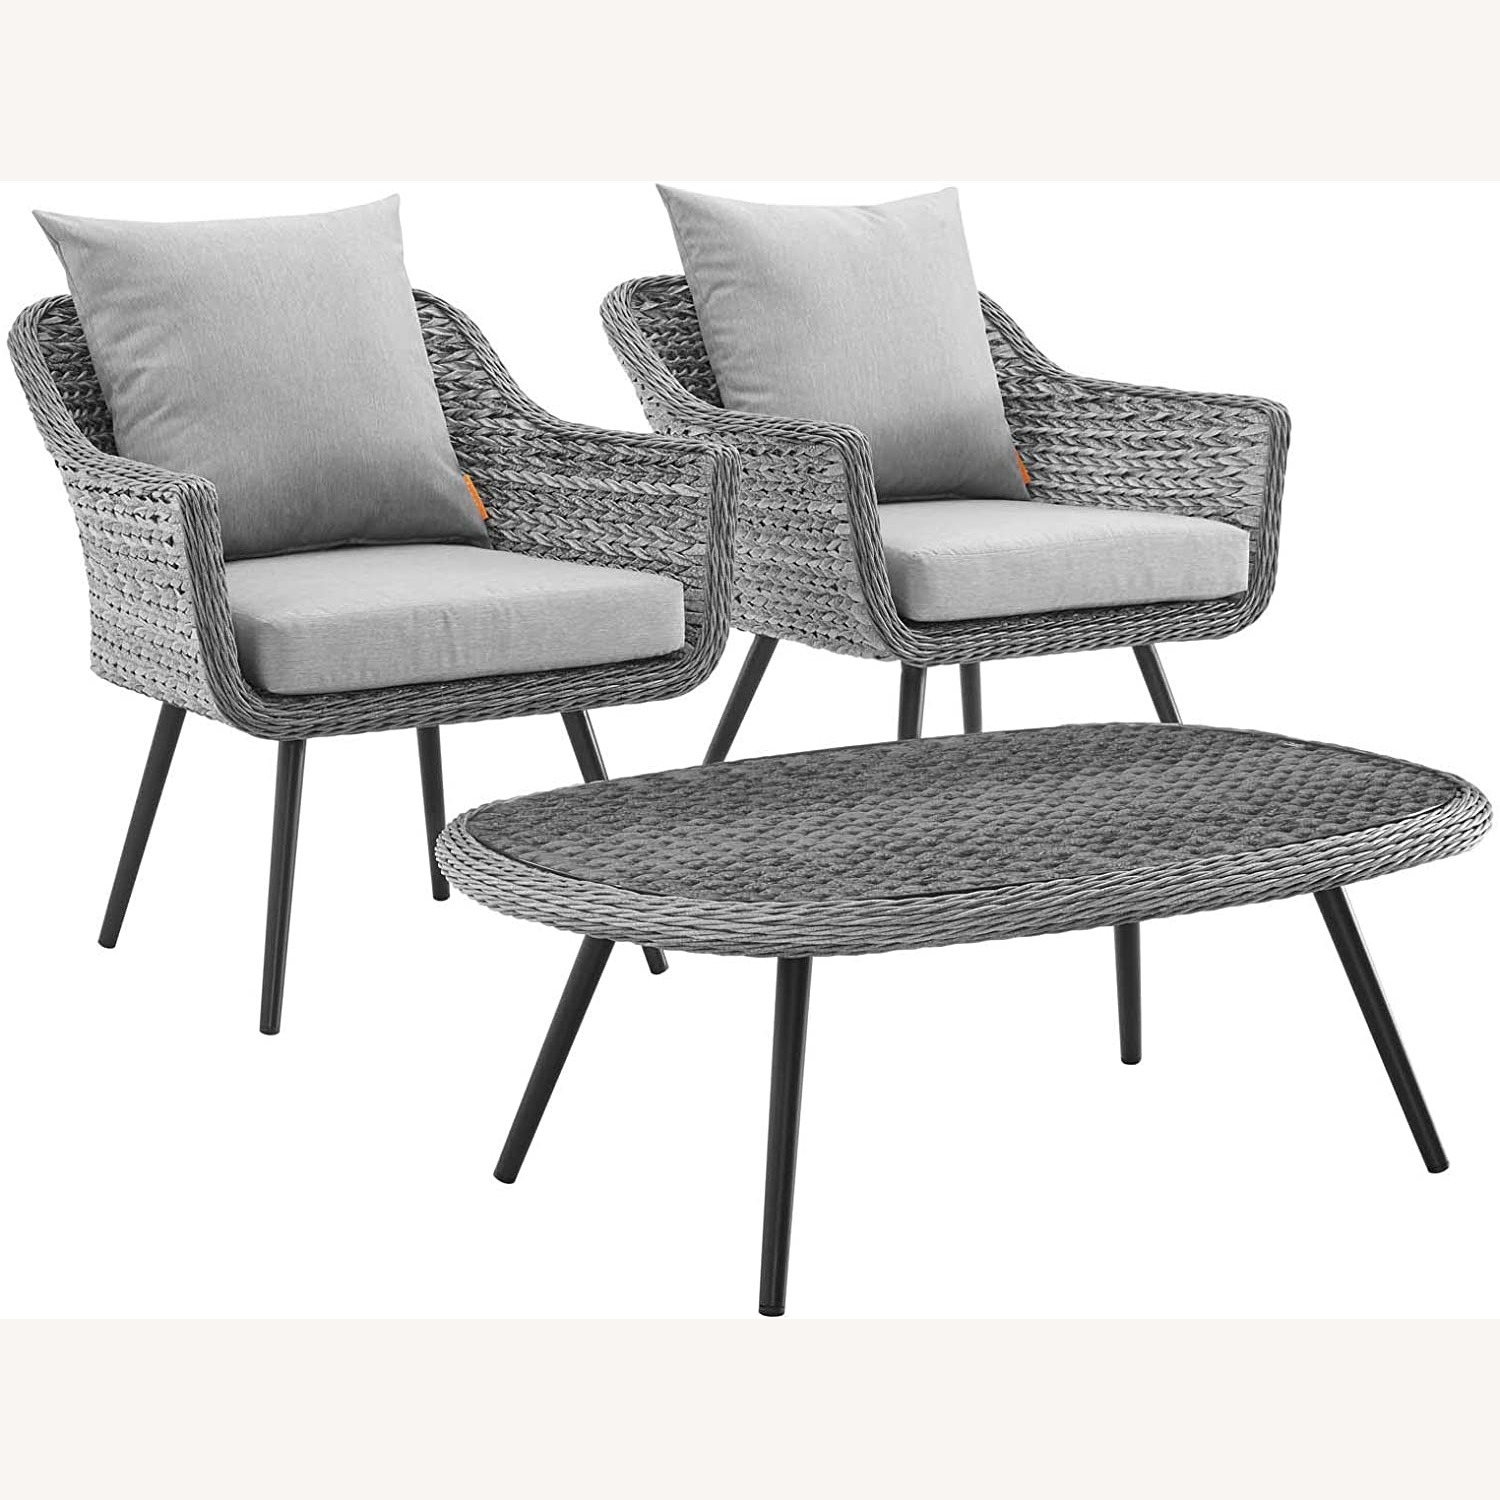 3-Piece Outdoor Sectional In Gray-On-Gray Tone - image-0